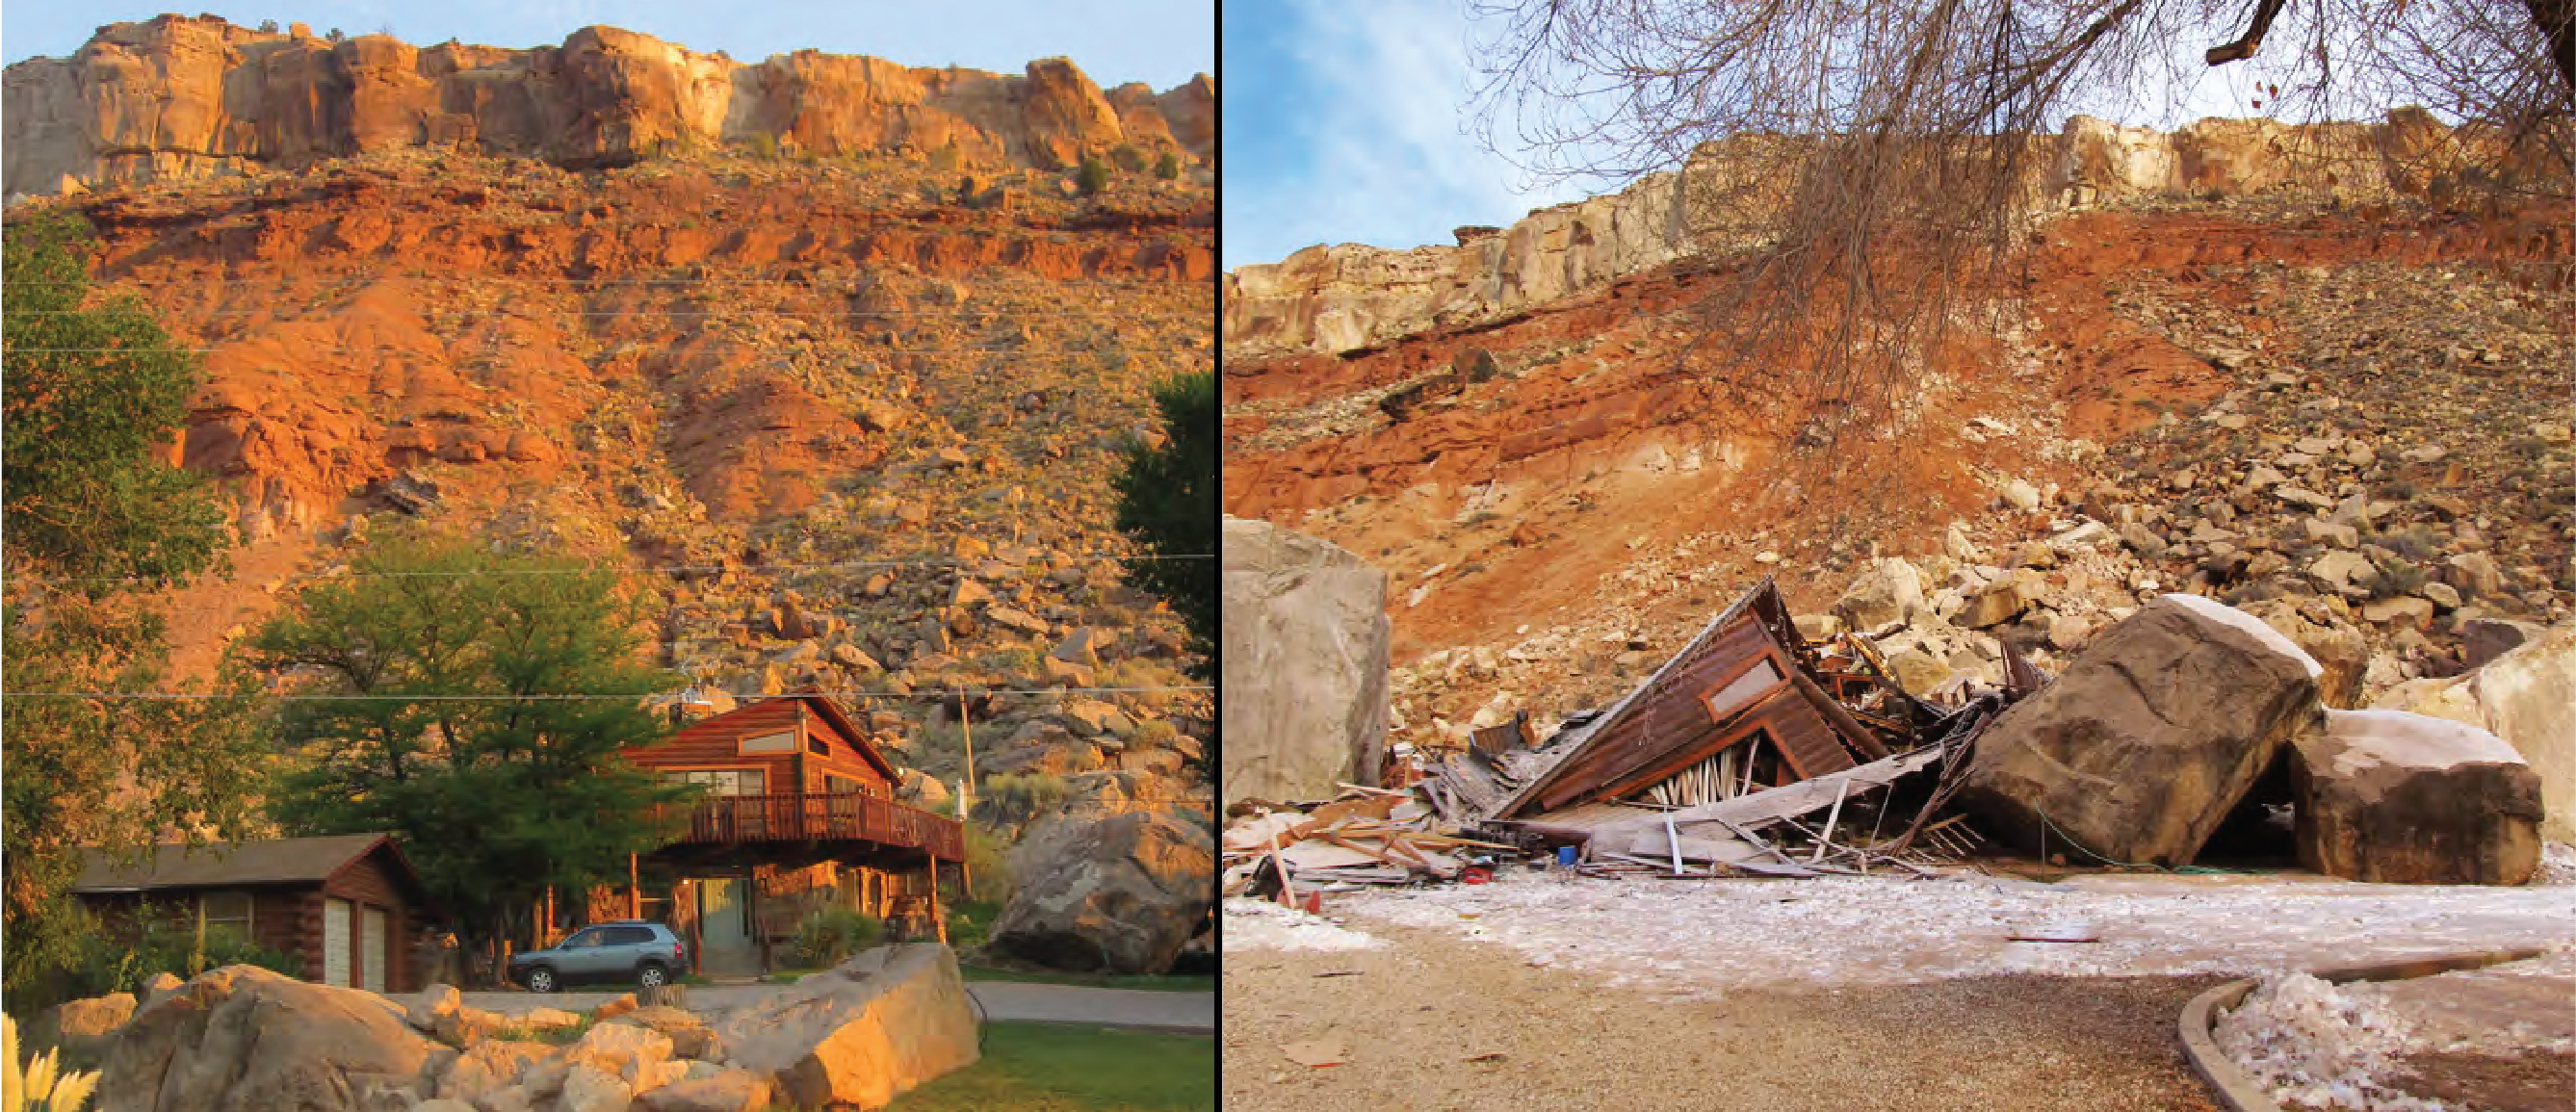 House before and after destruction from 2013 Rockville rockfall.